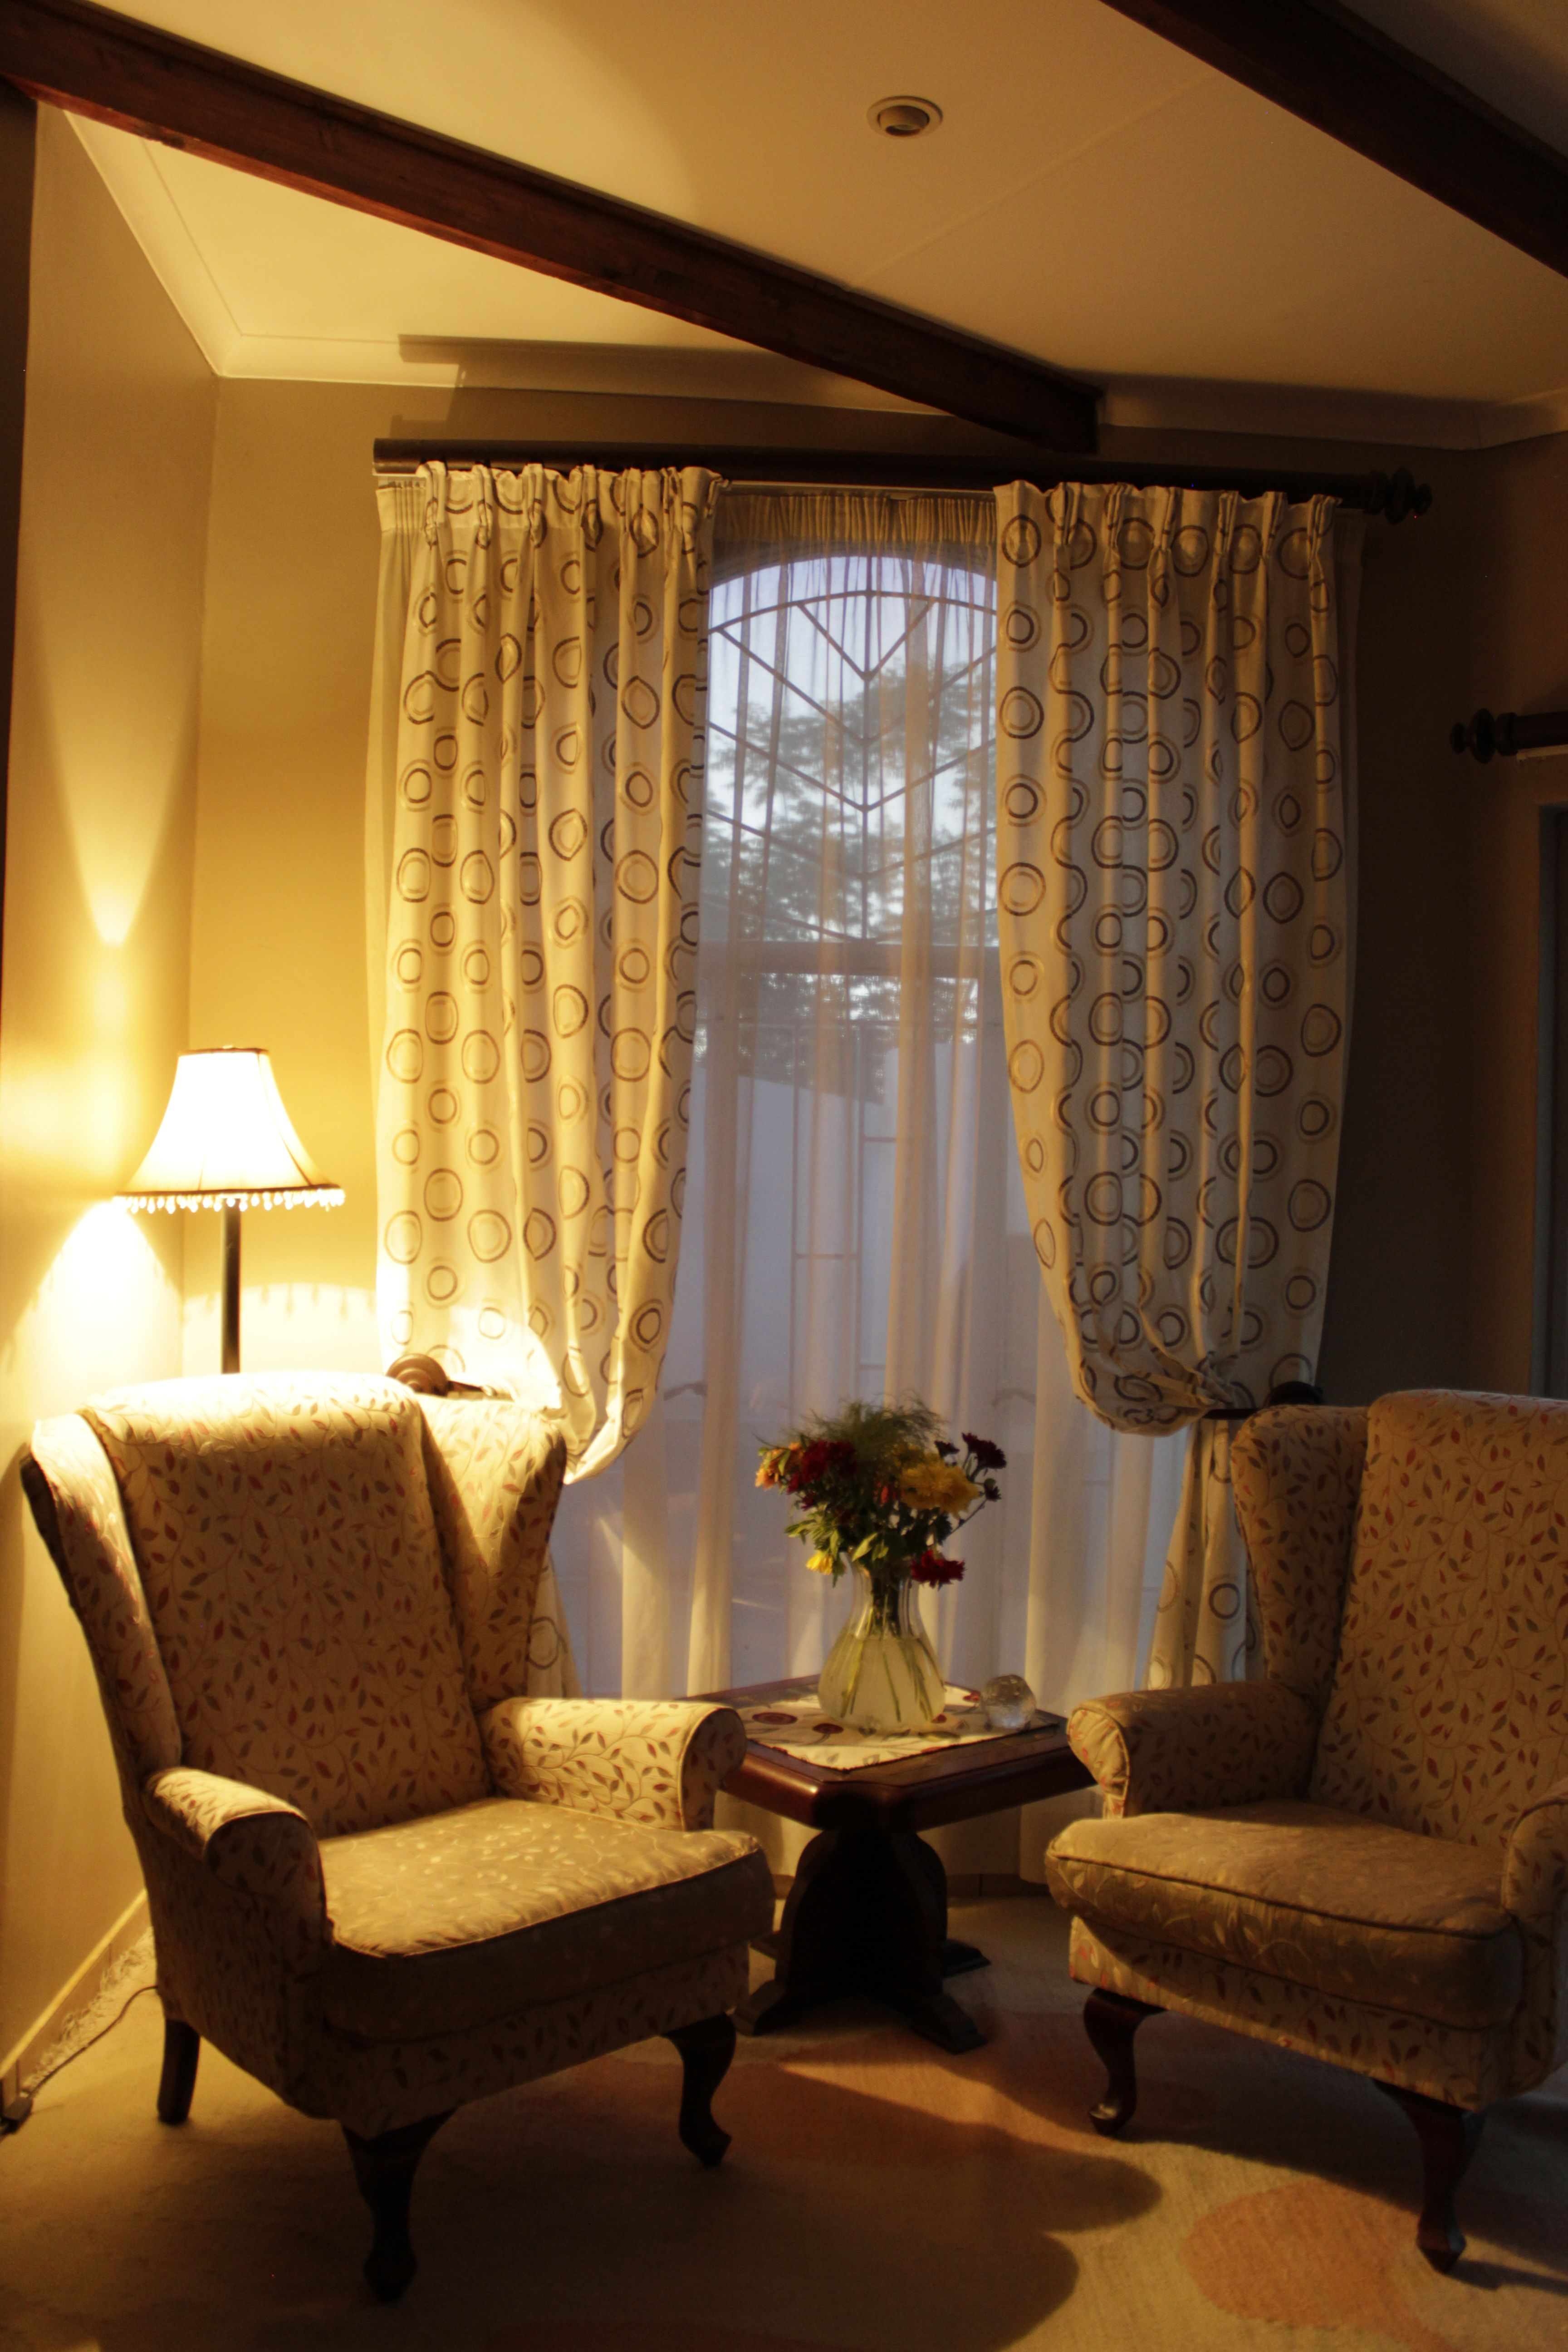 Stylish Sitting Room Drape Curtains With Tie Back Bespoke Custom Made  Curtains By Karseboom Namibia Made